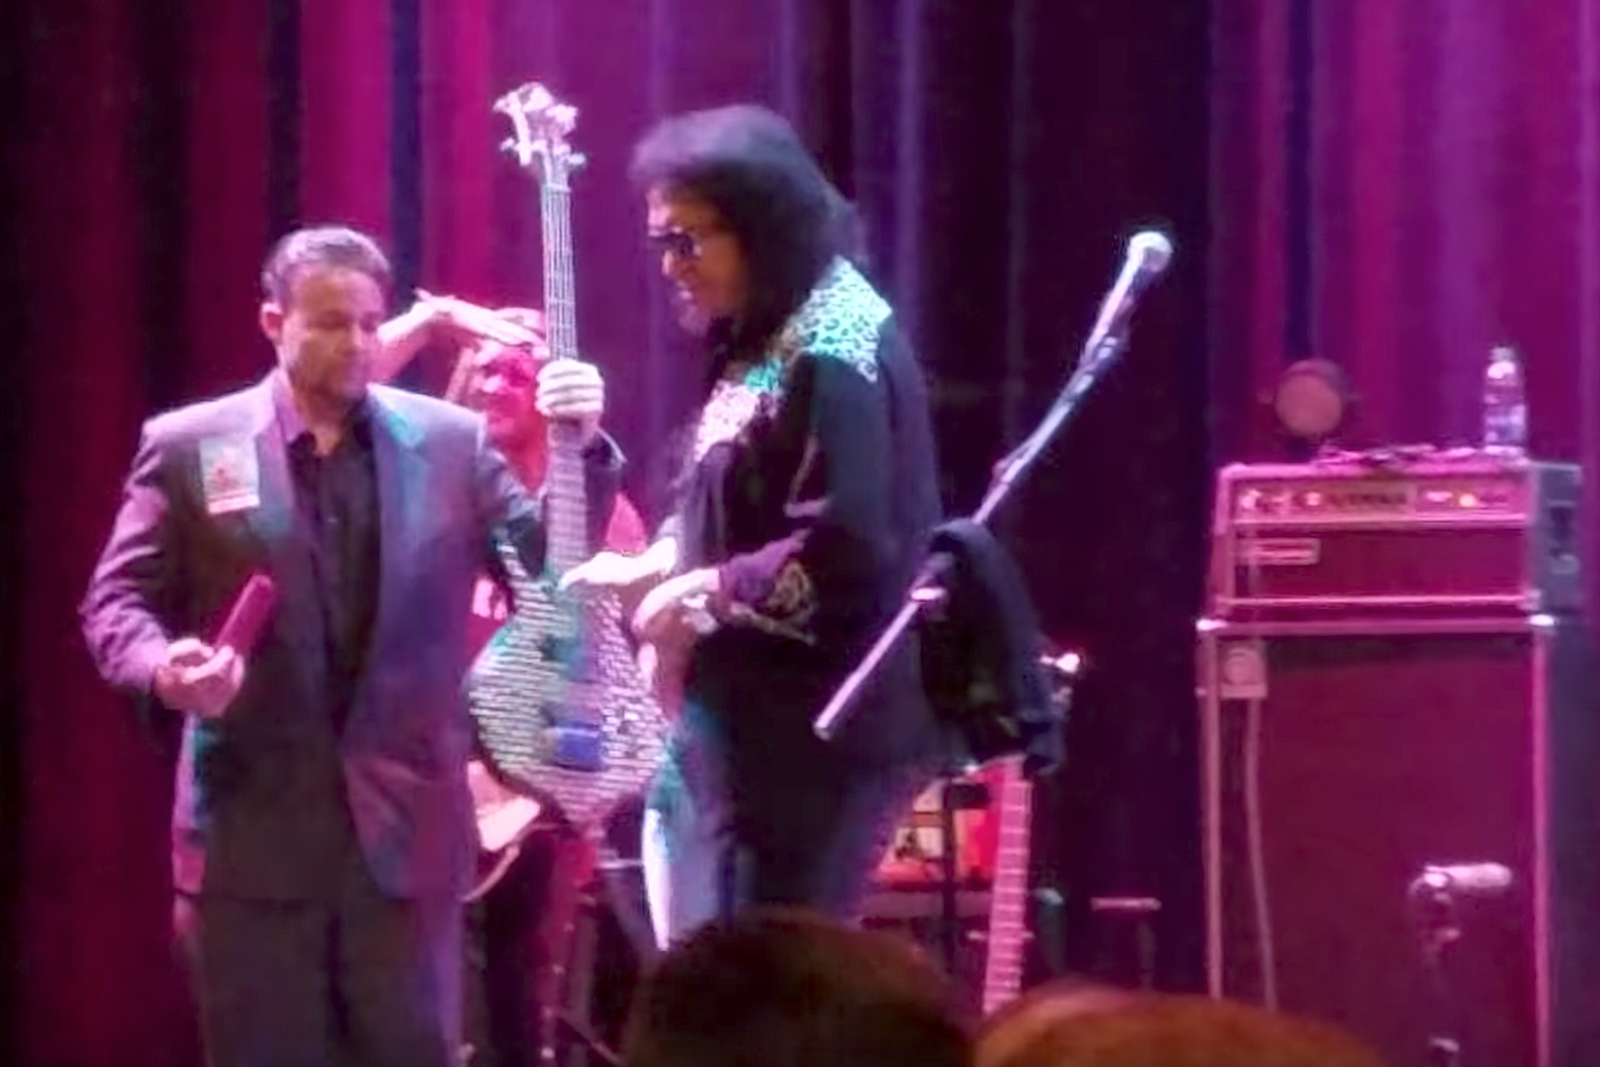 Watch Gene Simmons Go Into the Crowd to Confront a Heckler